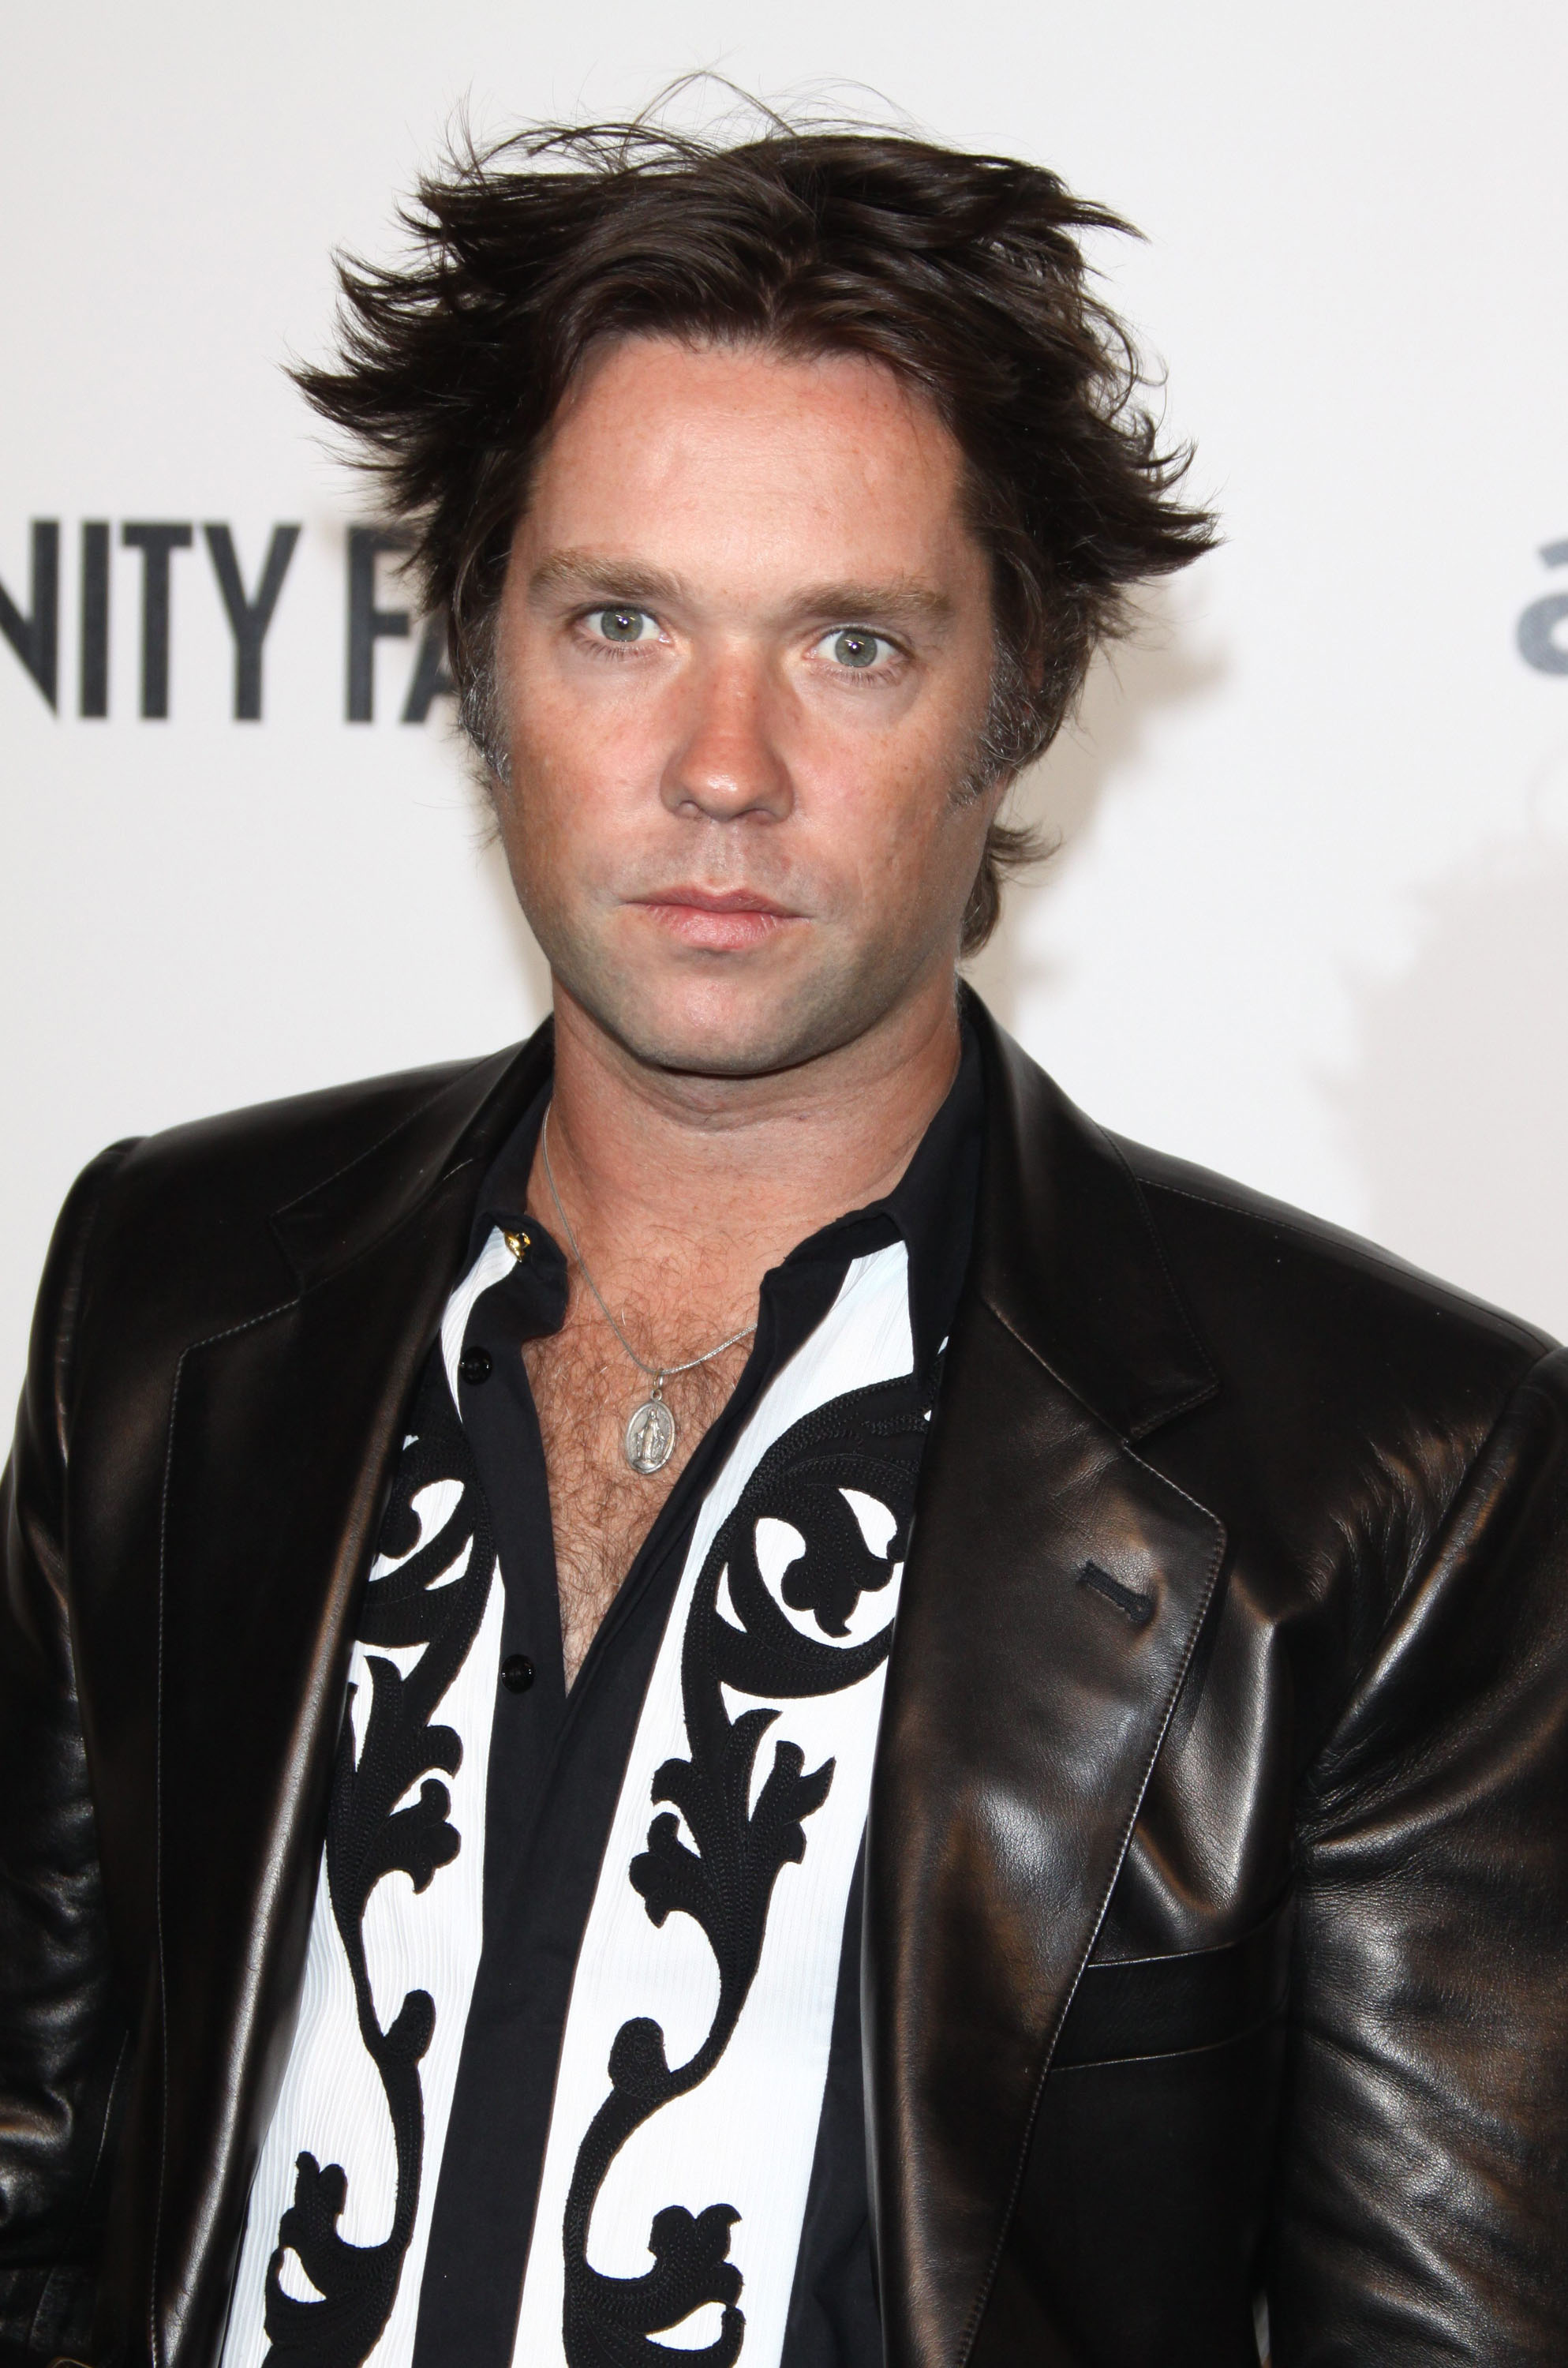 rufus wainwright lady gaga